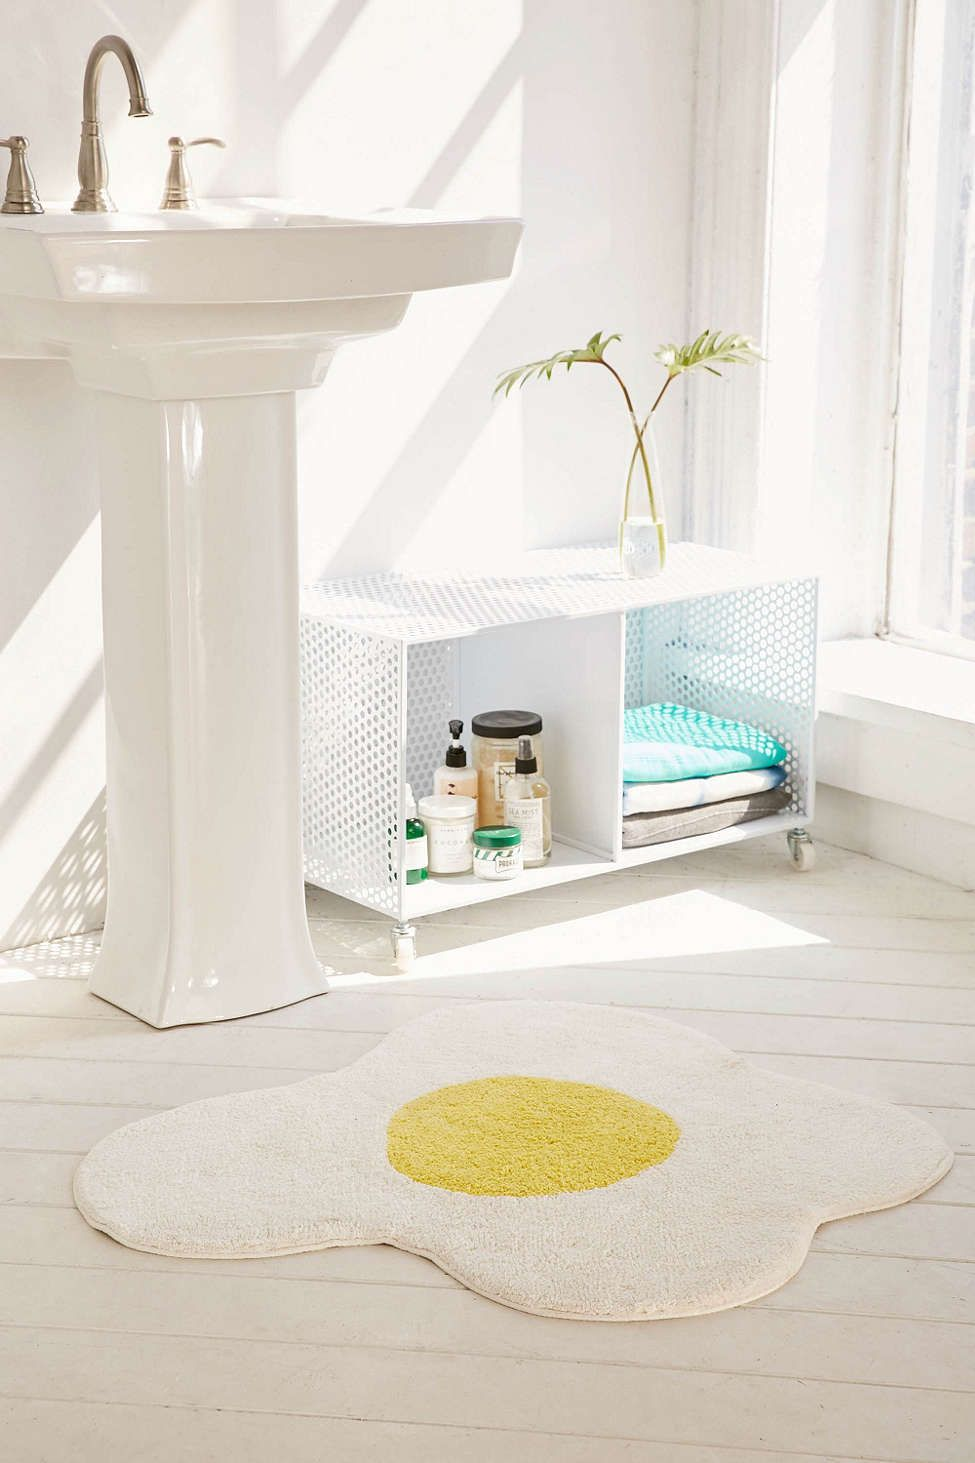 fresh bathroom home so best bath outfitters latest urban images on ideas improvement mat rose bedroom styles rugs rug